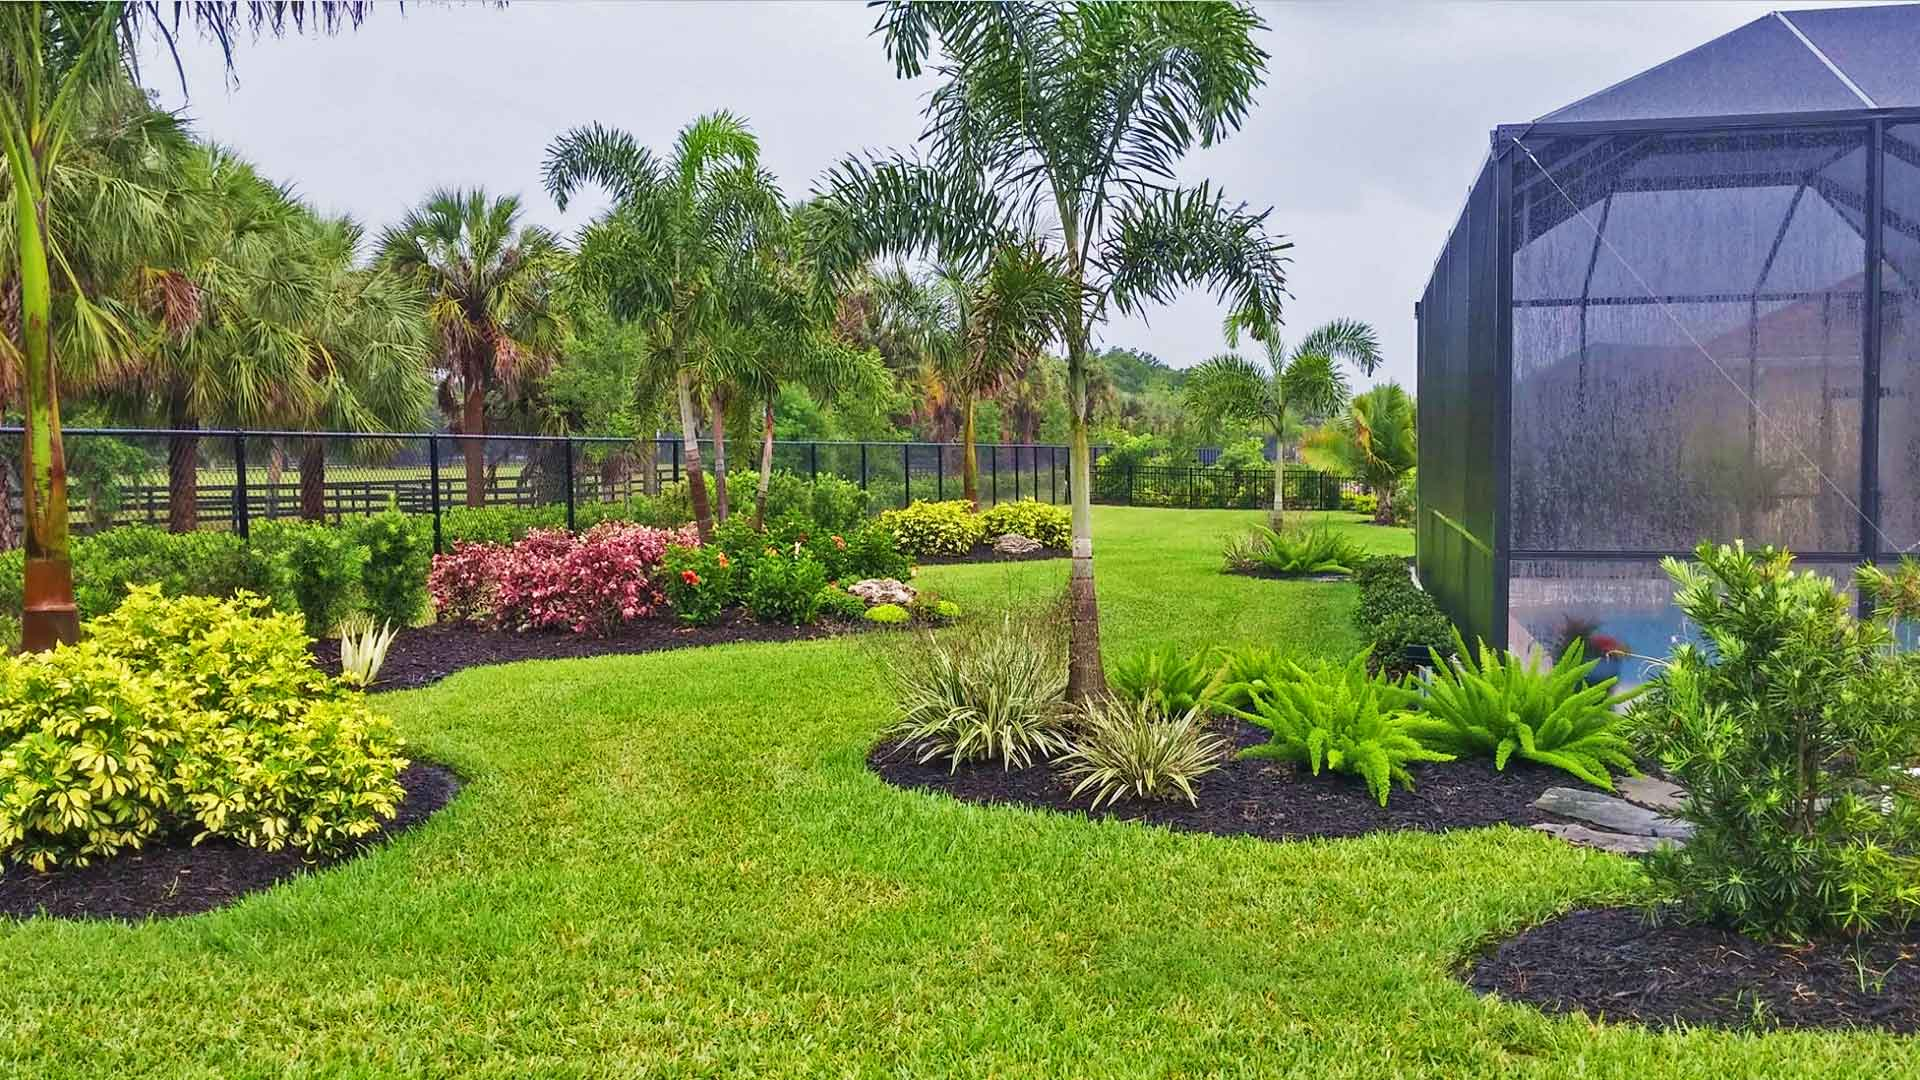 Maintaining Your Lawn And Landscaping In Palmetto Fl Surrounding Areas Is A Year Round Task September The Start Of Fall Here Florida